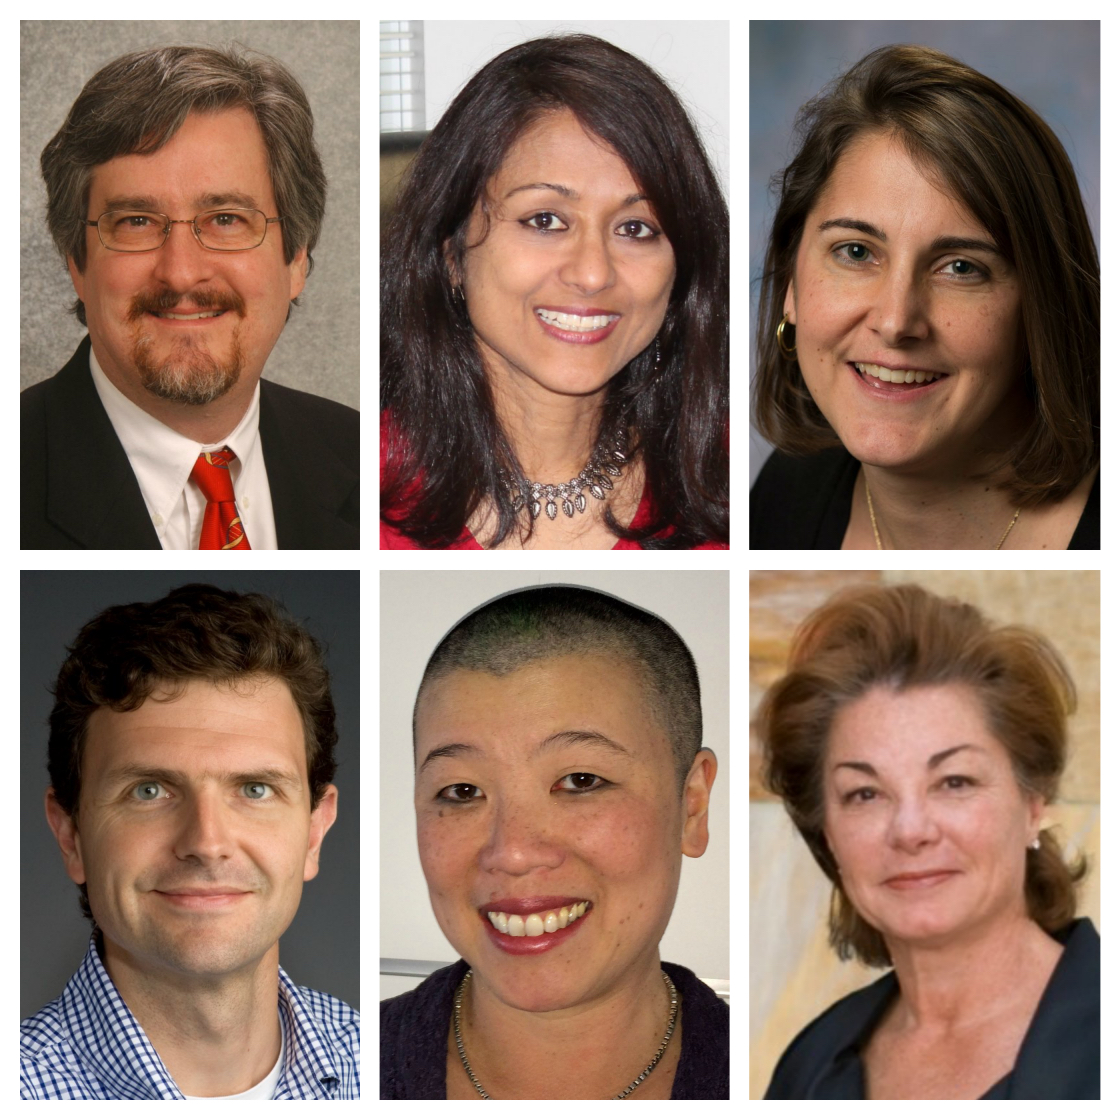 A collage of photos of the research team involved in Dr. Hunger's work